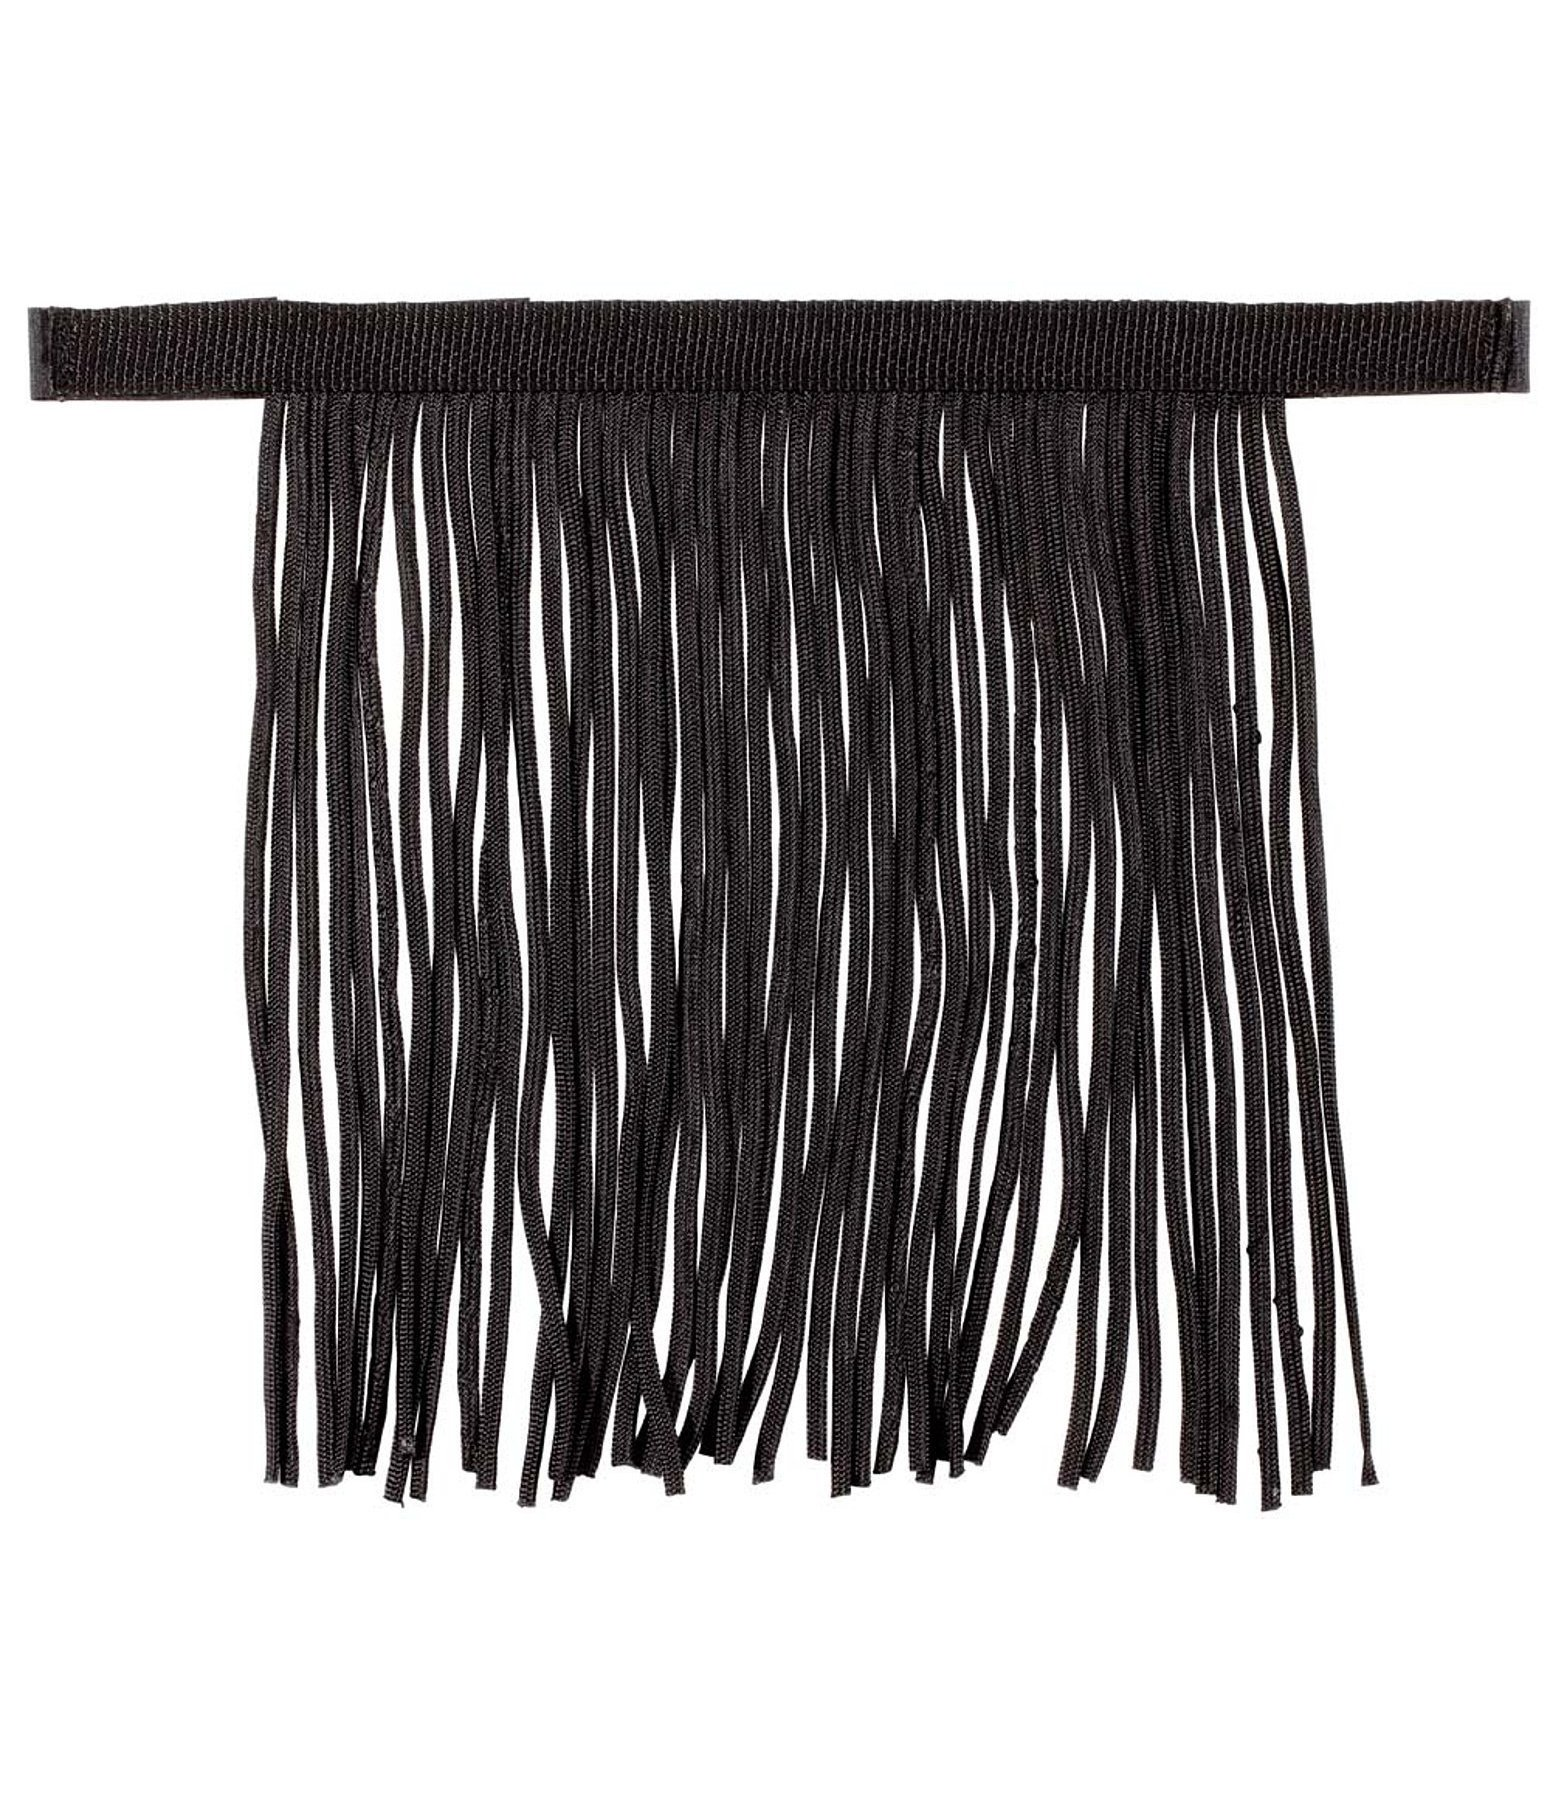 Fly Fringes Super Price